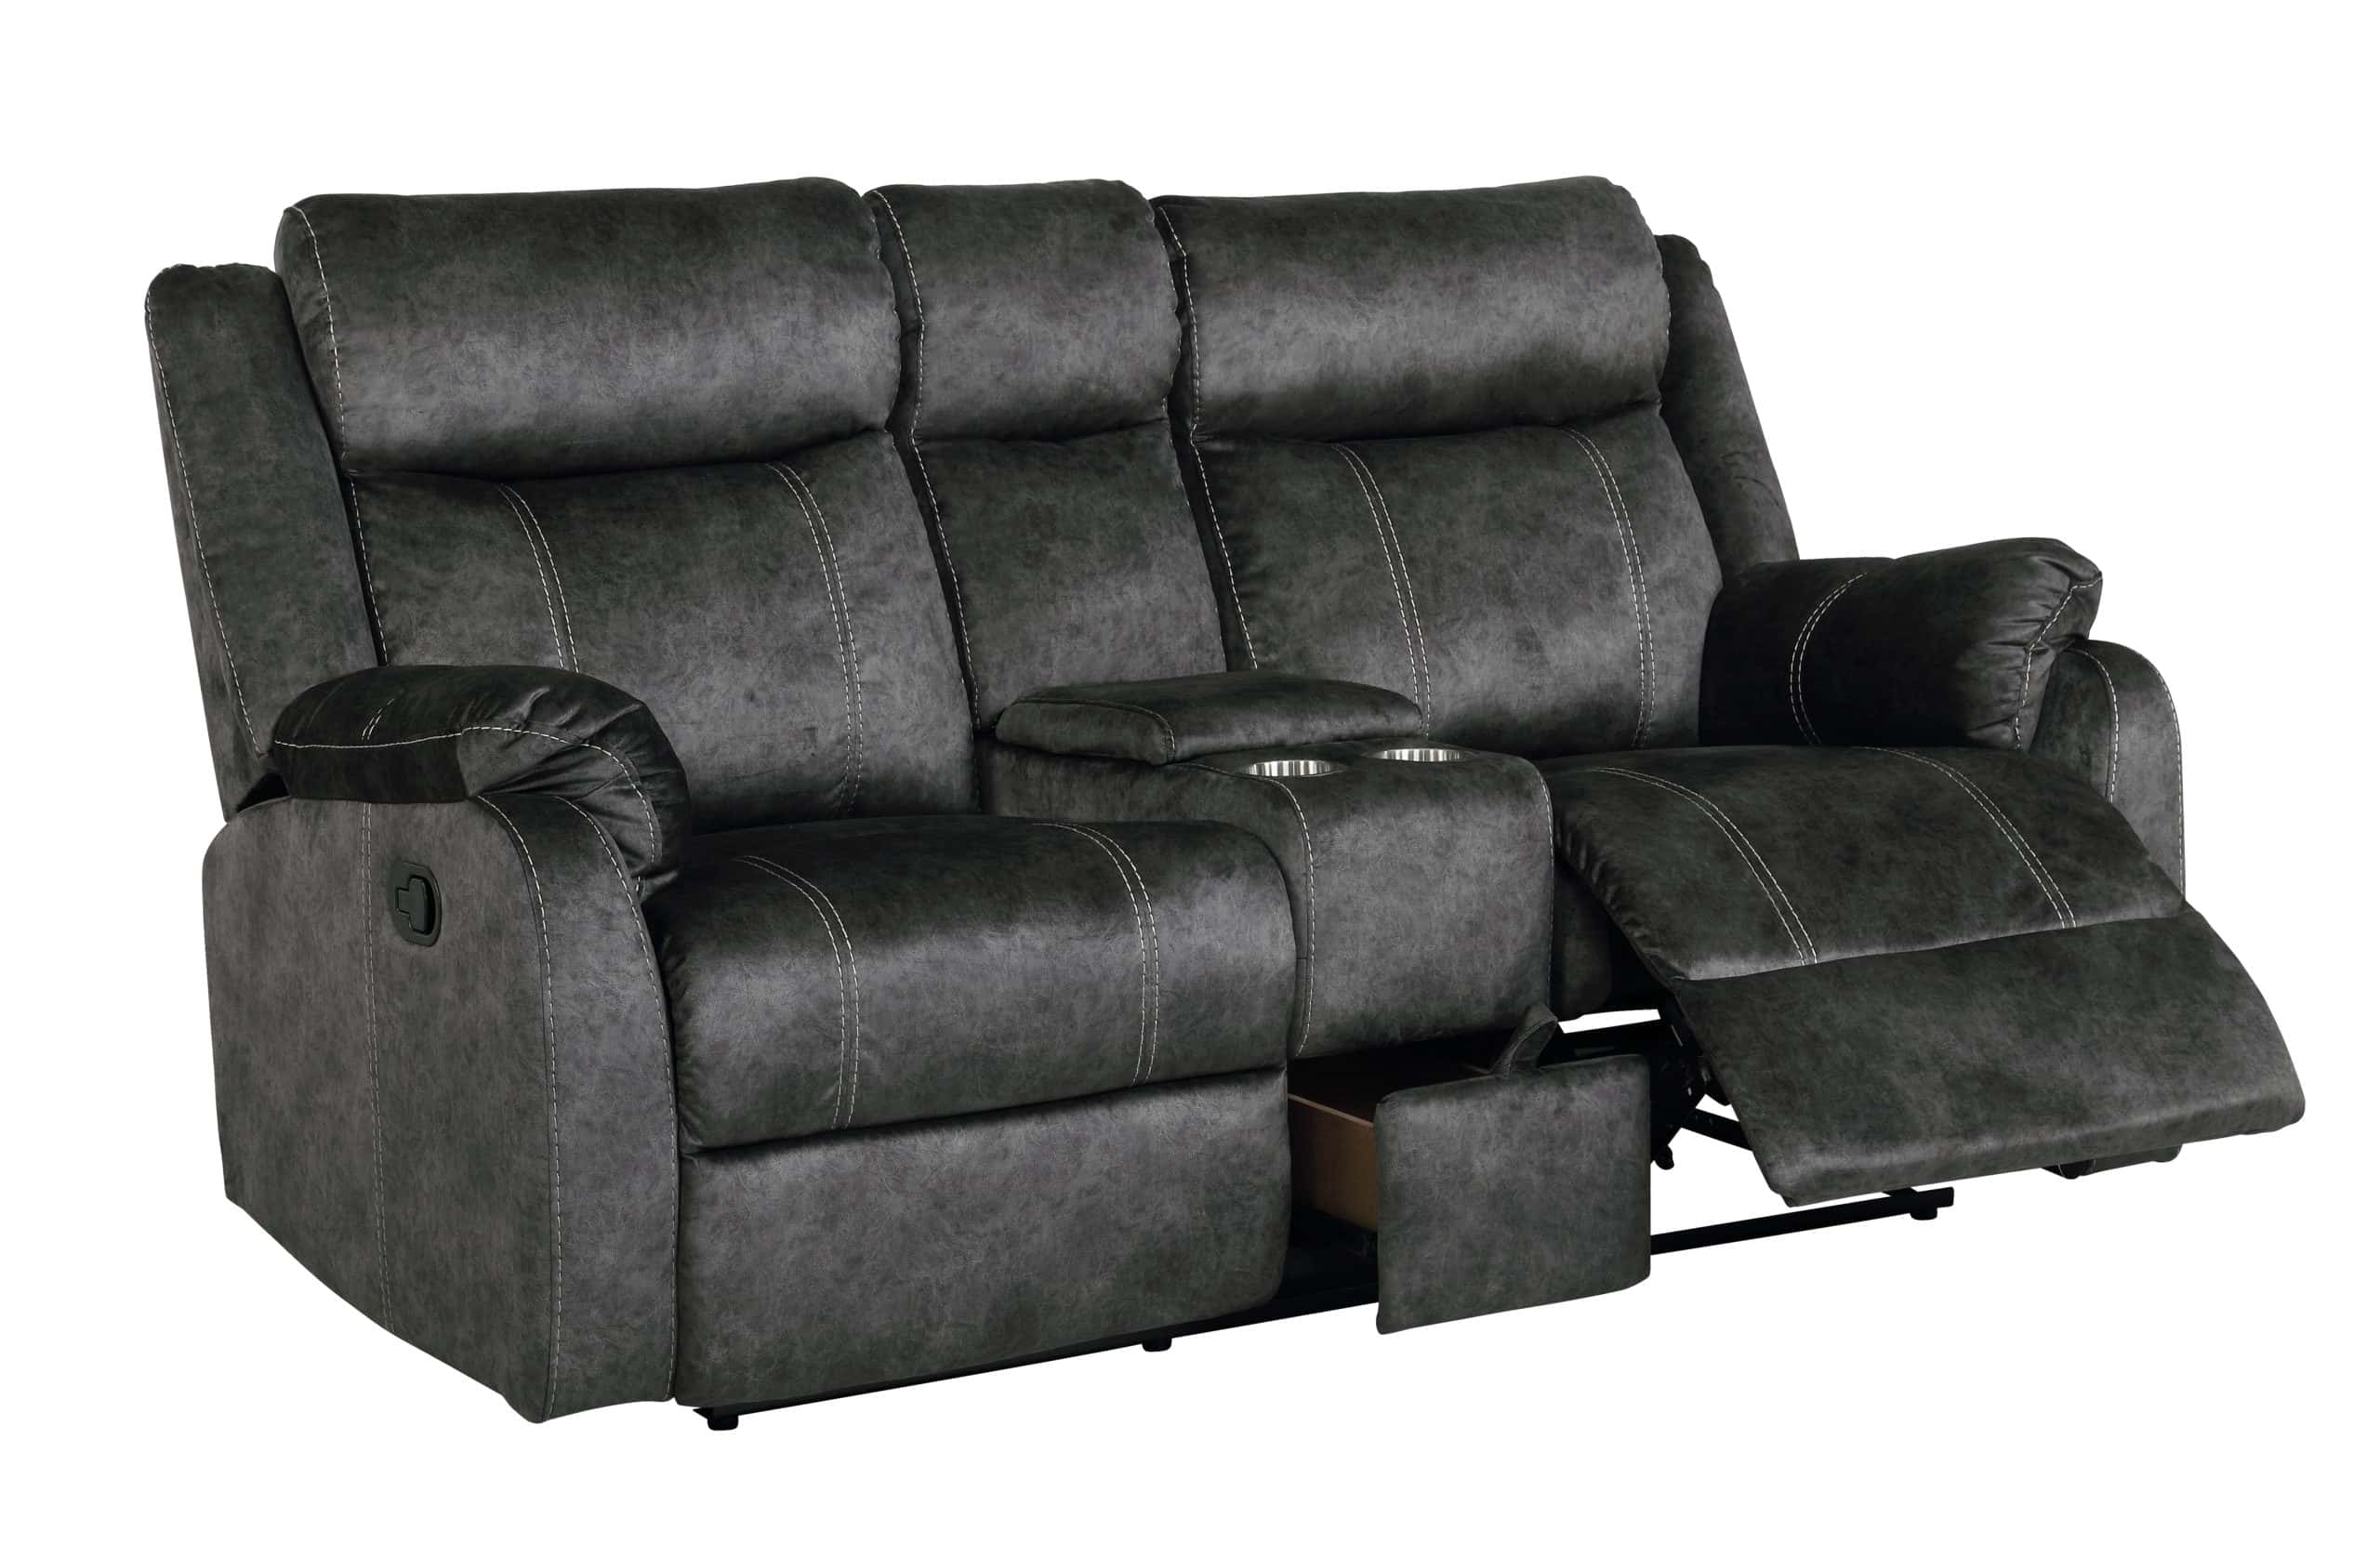 U7303 Domino Granite Microfiber Reclining Sofa By Global Furniture